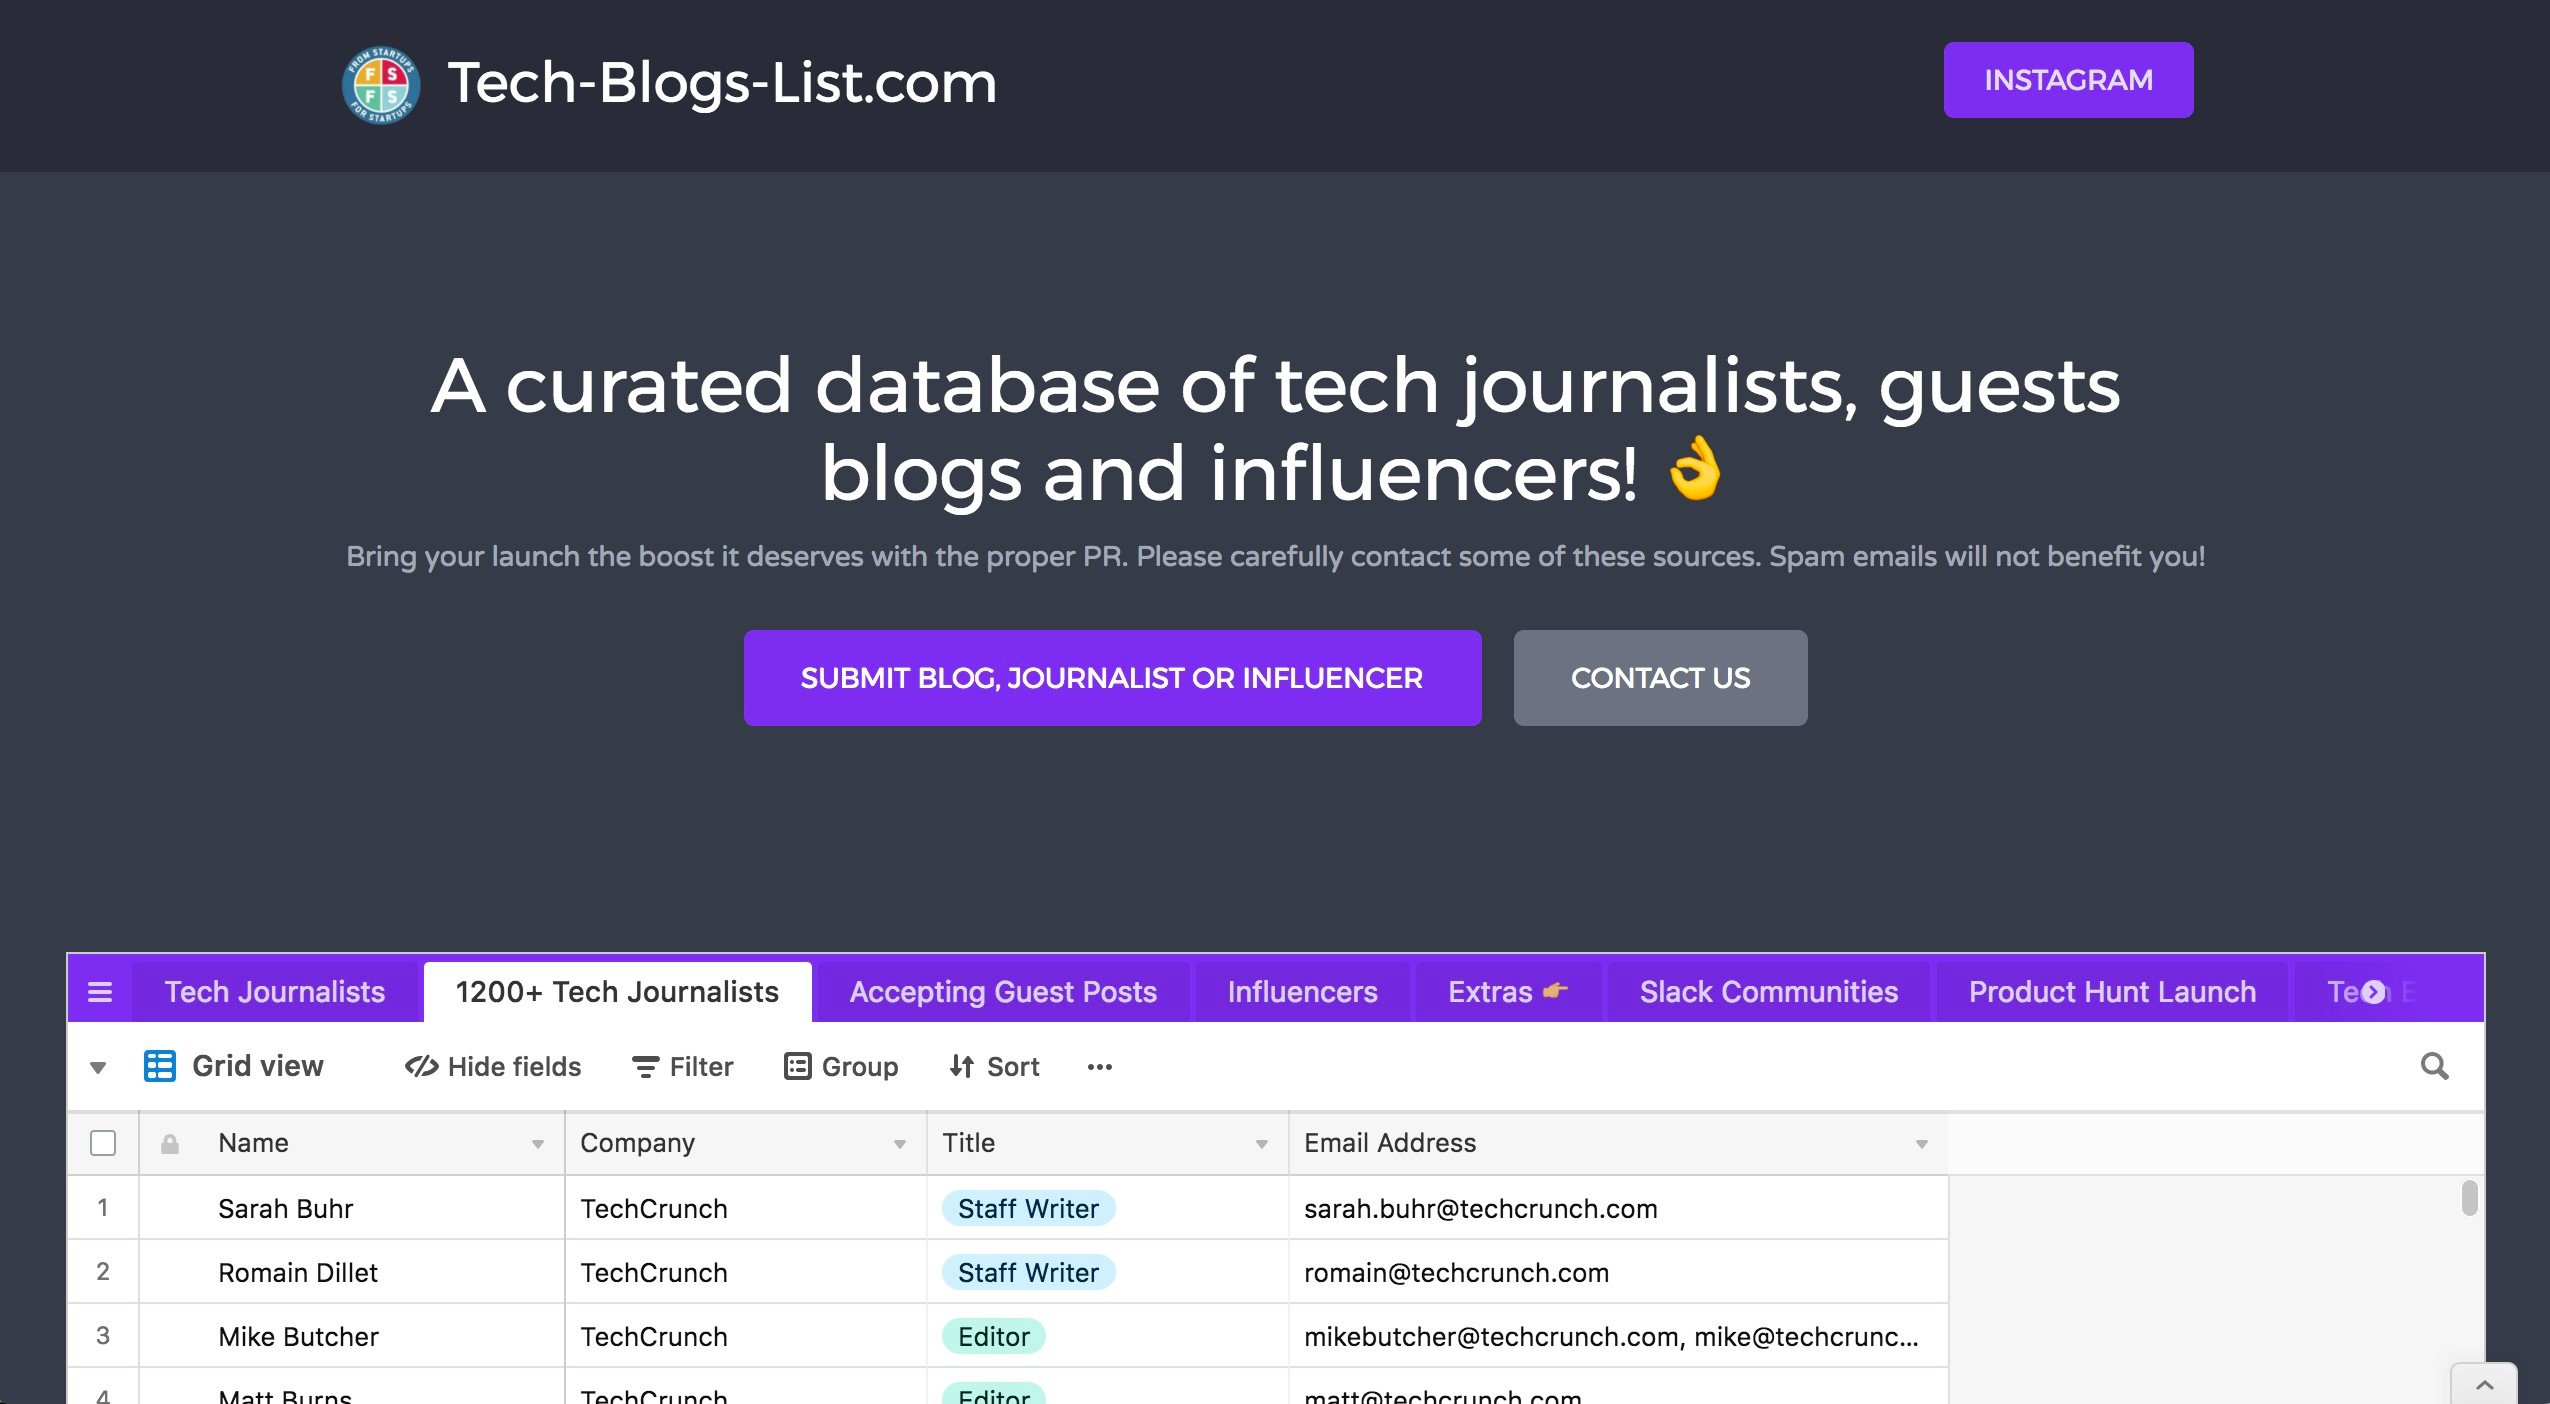 Tech-Blogs-List com Alternatives and Similar Websites and Apps